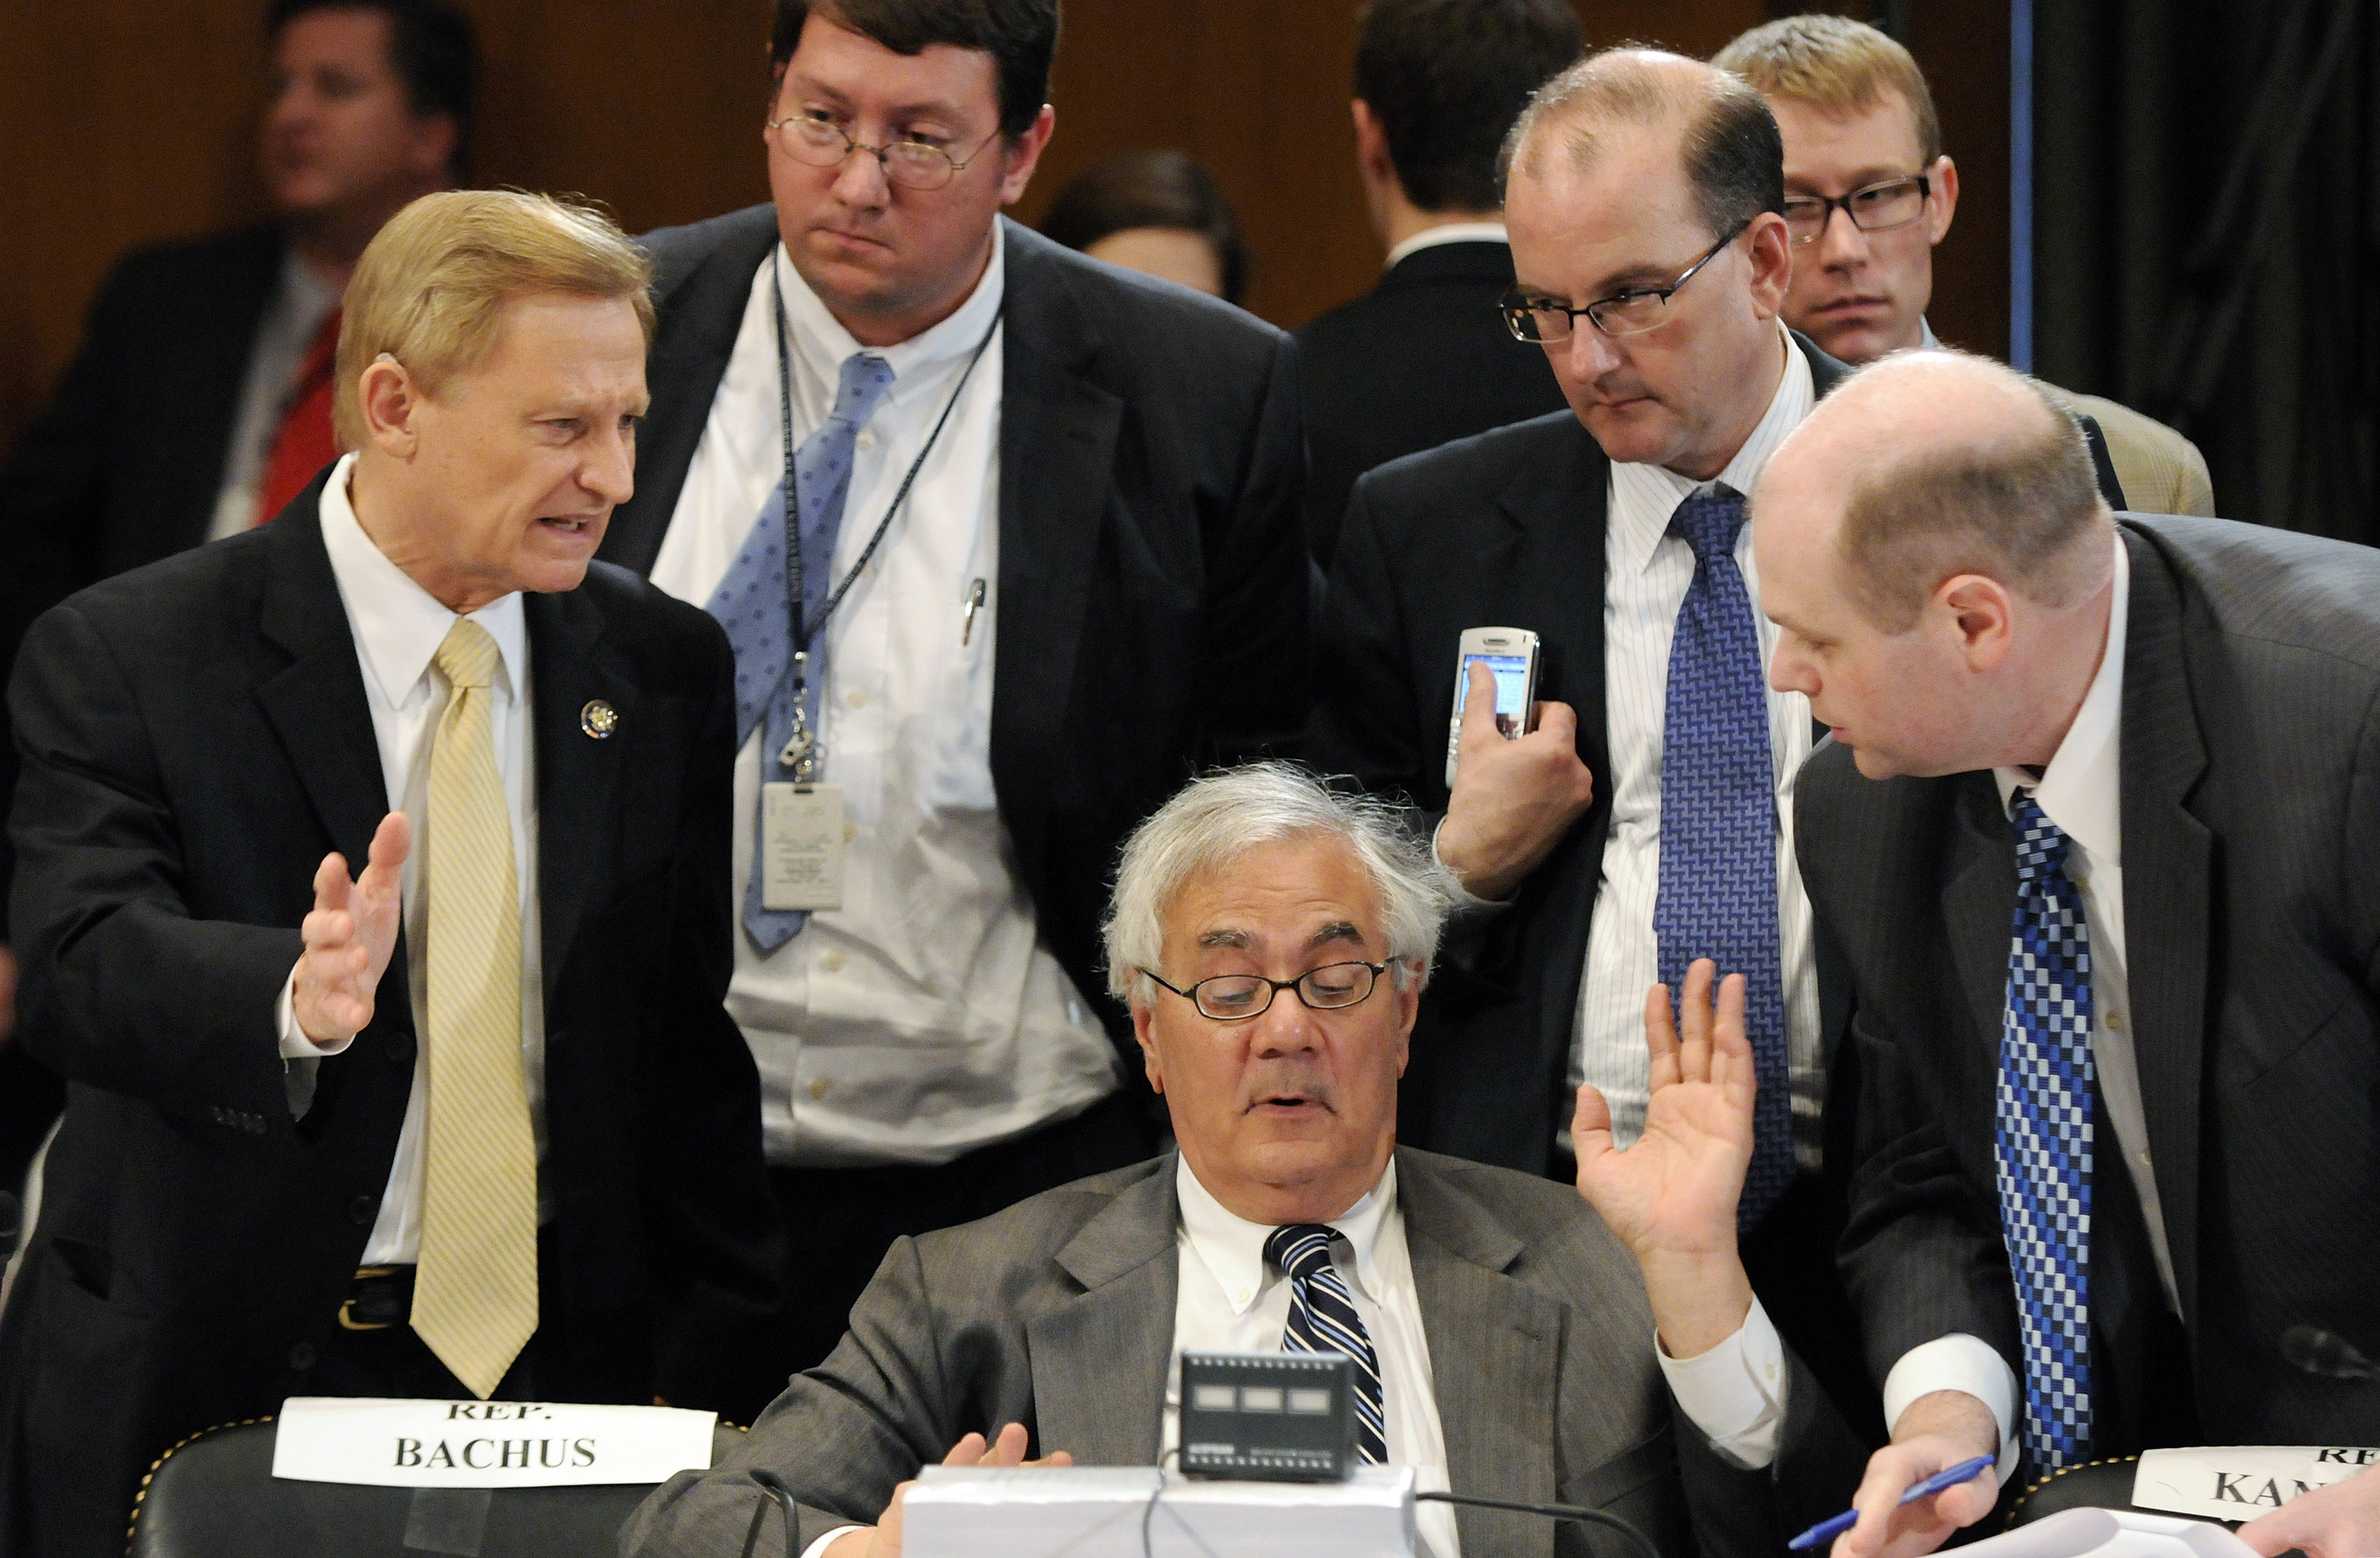 Frank talks with a group including Bachus during a recess from a committee conference on Wall Street reform on Capitol Hill